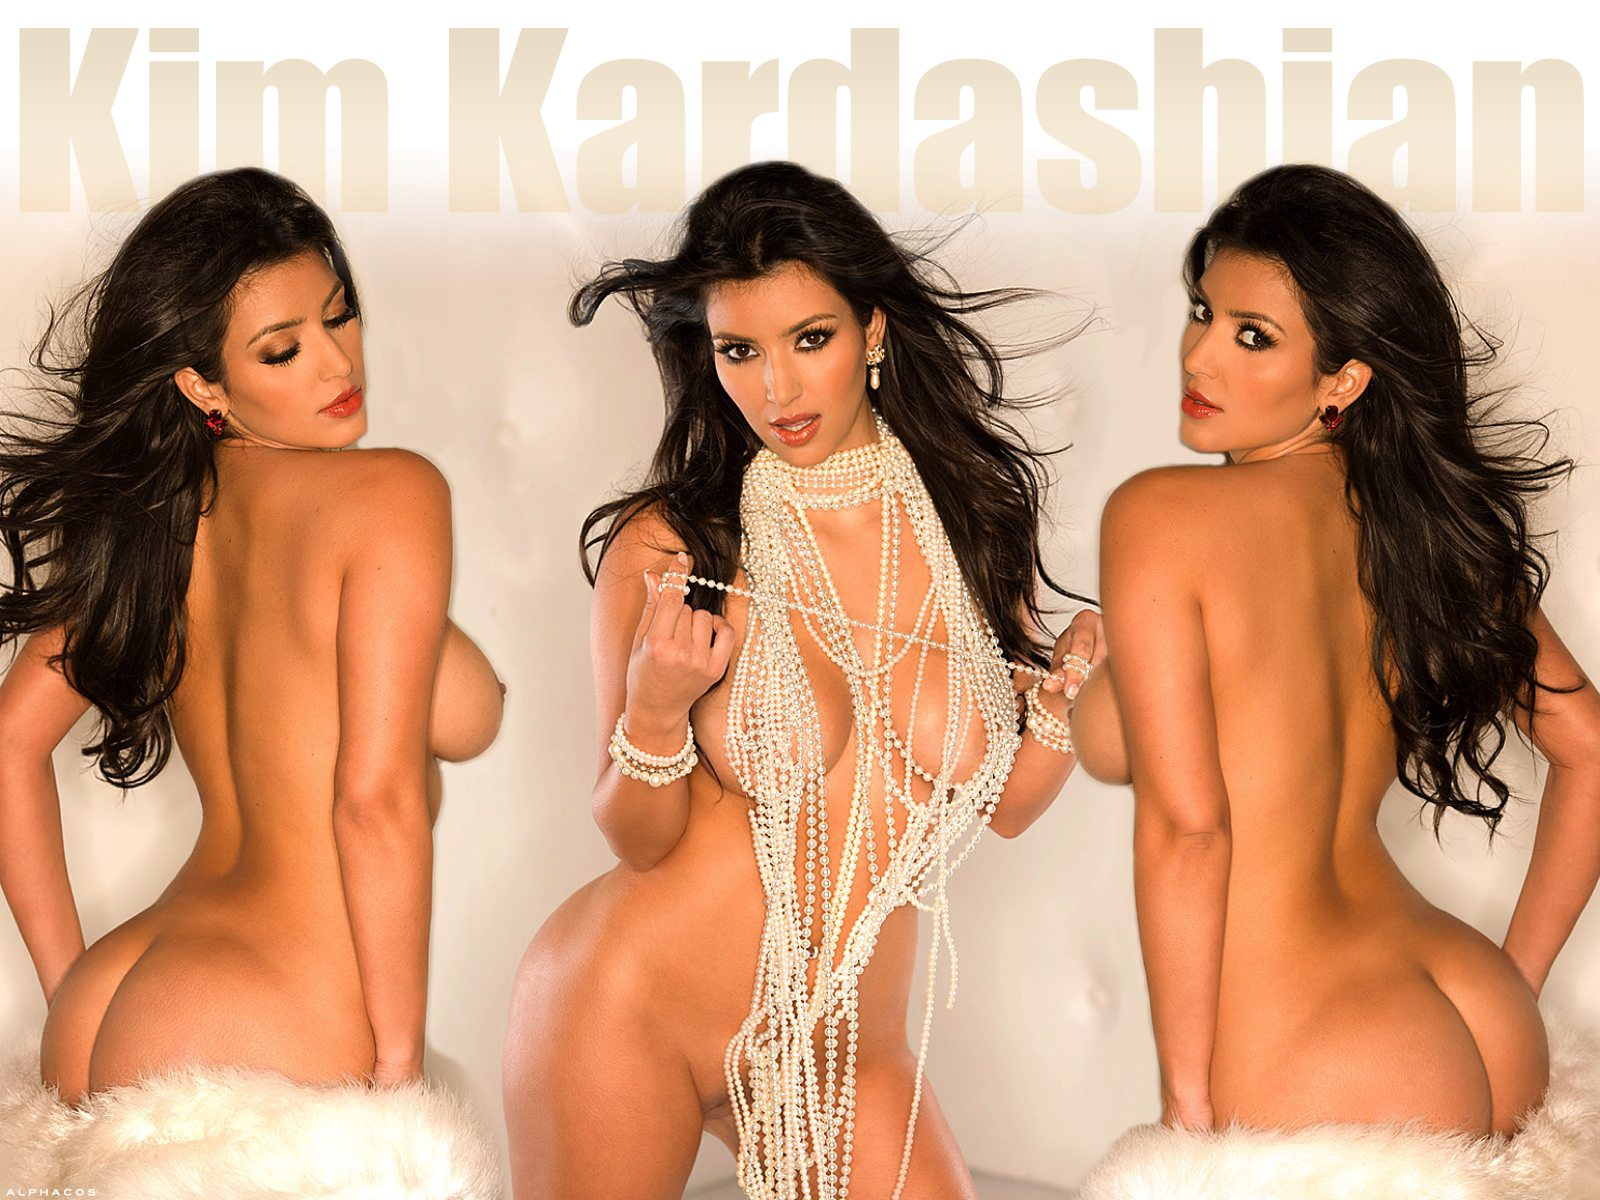 Not hot nude pictures of kim kardashian can recommend